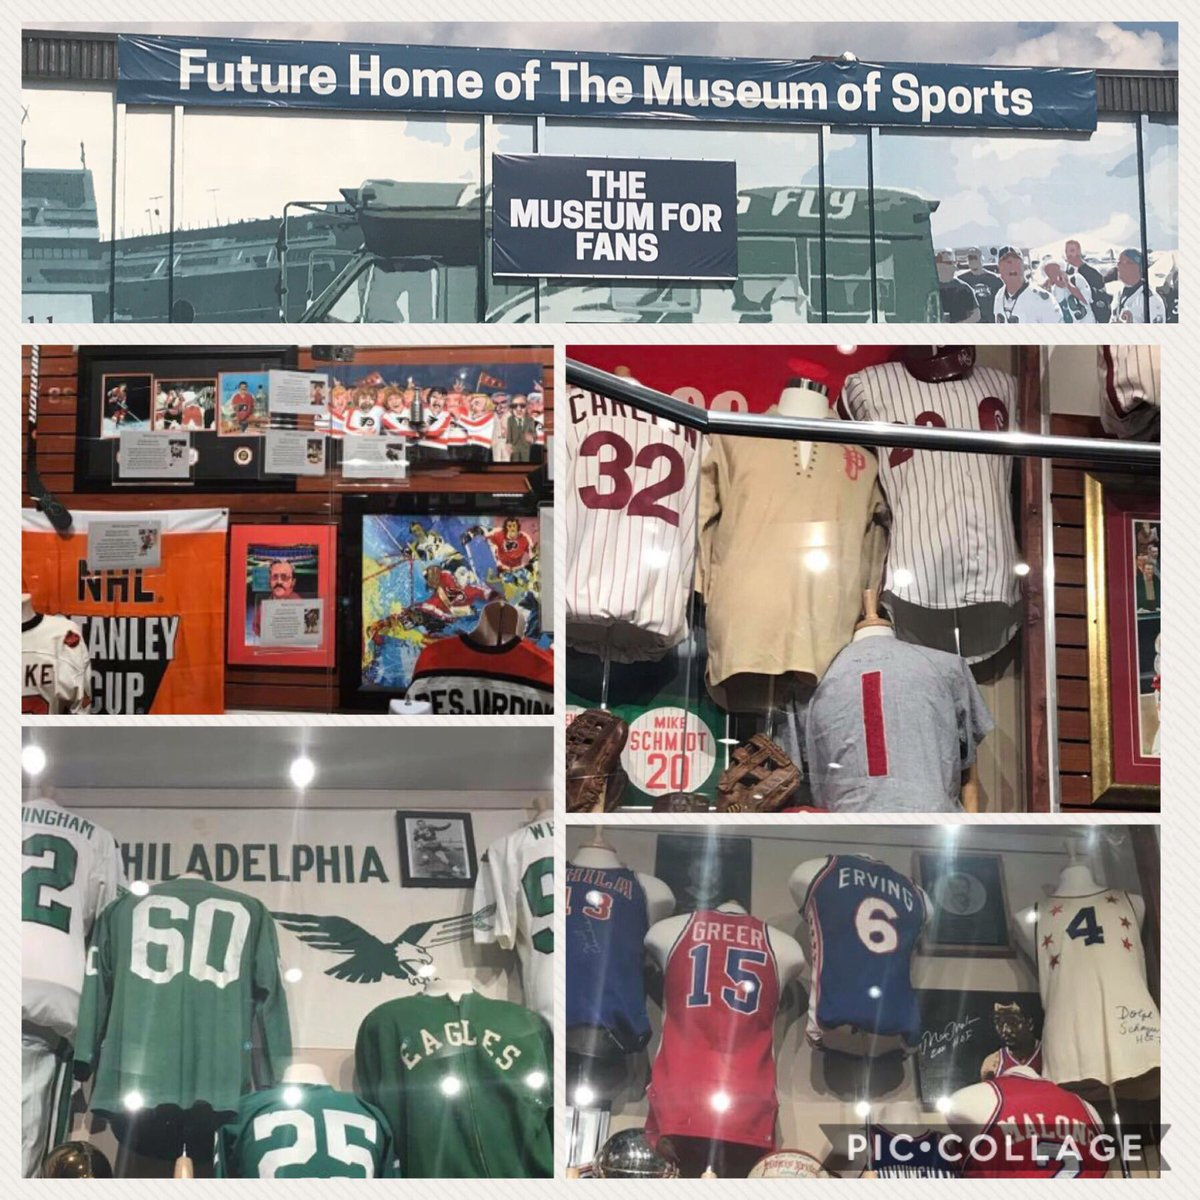 PHILLY FANS:  Help me spread the word about the new Museum of Sports (@MoSPhilly) coming to the South Philly Sports Complex!  Please RETWEET and follow me for all news and updates on the project! #FlyEaglesFly #flyers #sixers #BeBold #Union #Soul